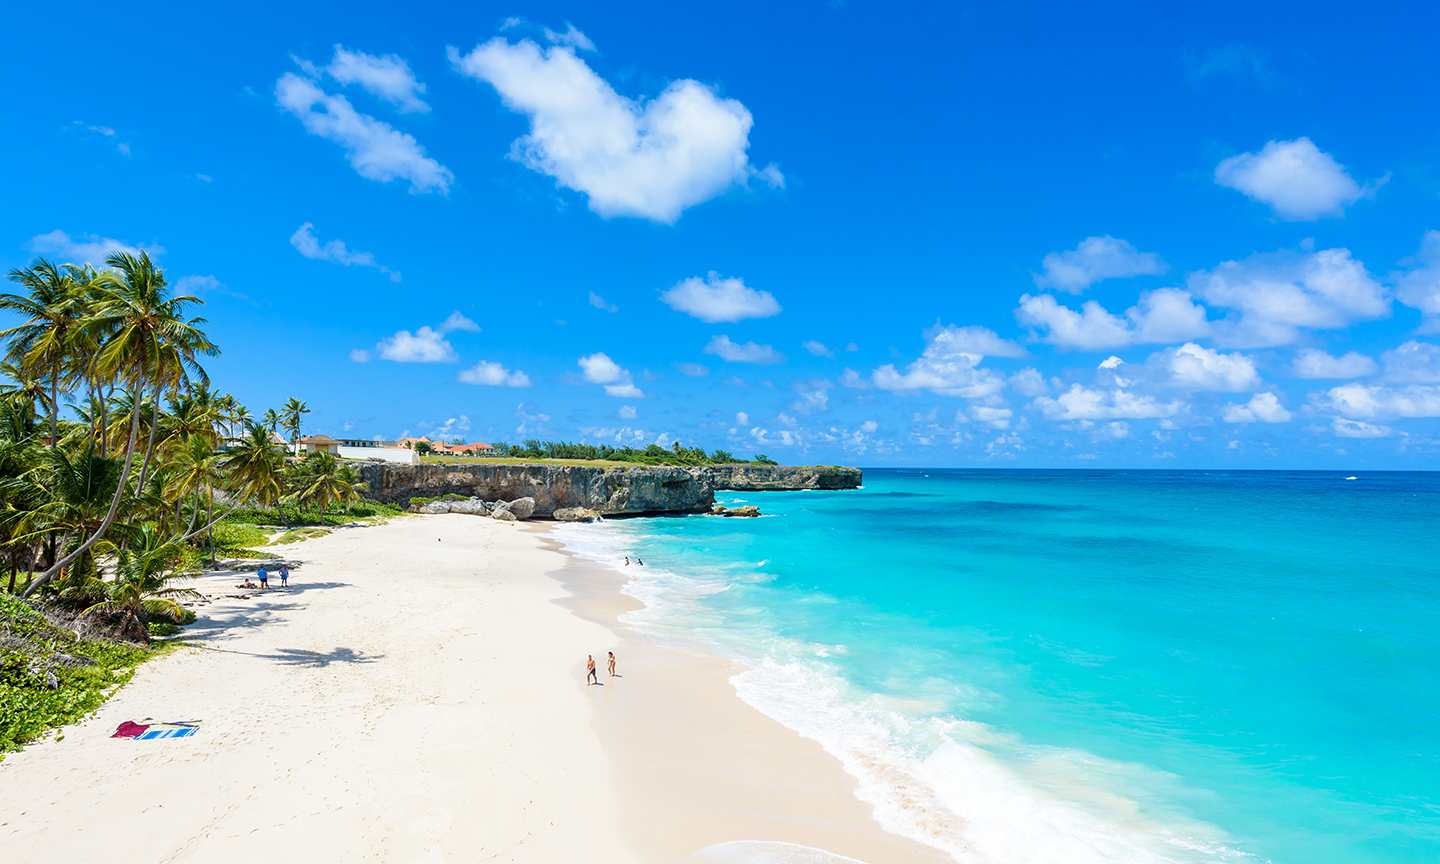 A white sandy beach in Bridgetown, Barbados, with turquoise water and blue sky.